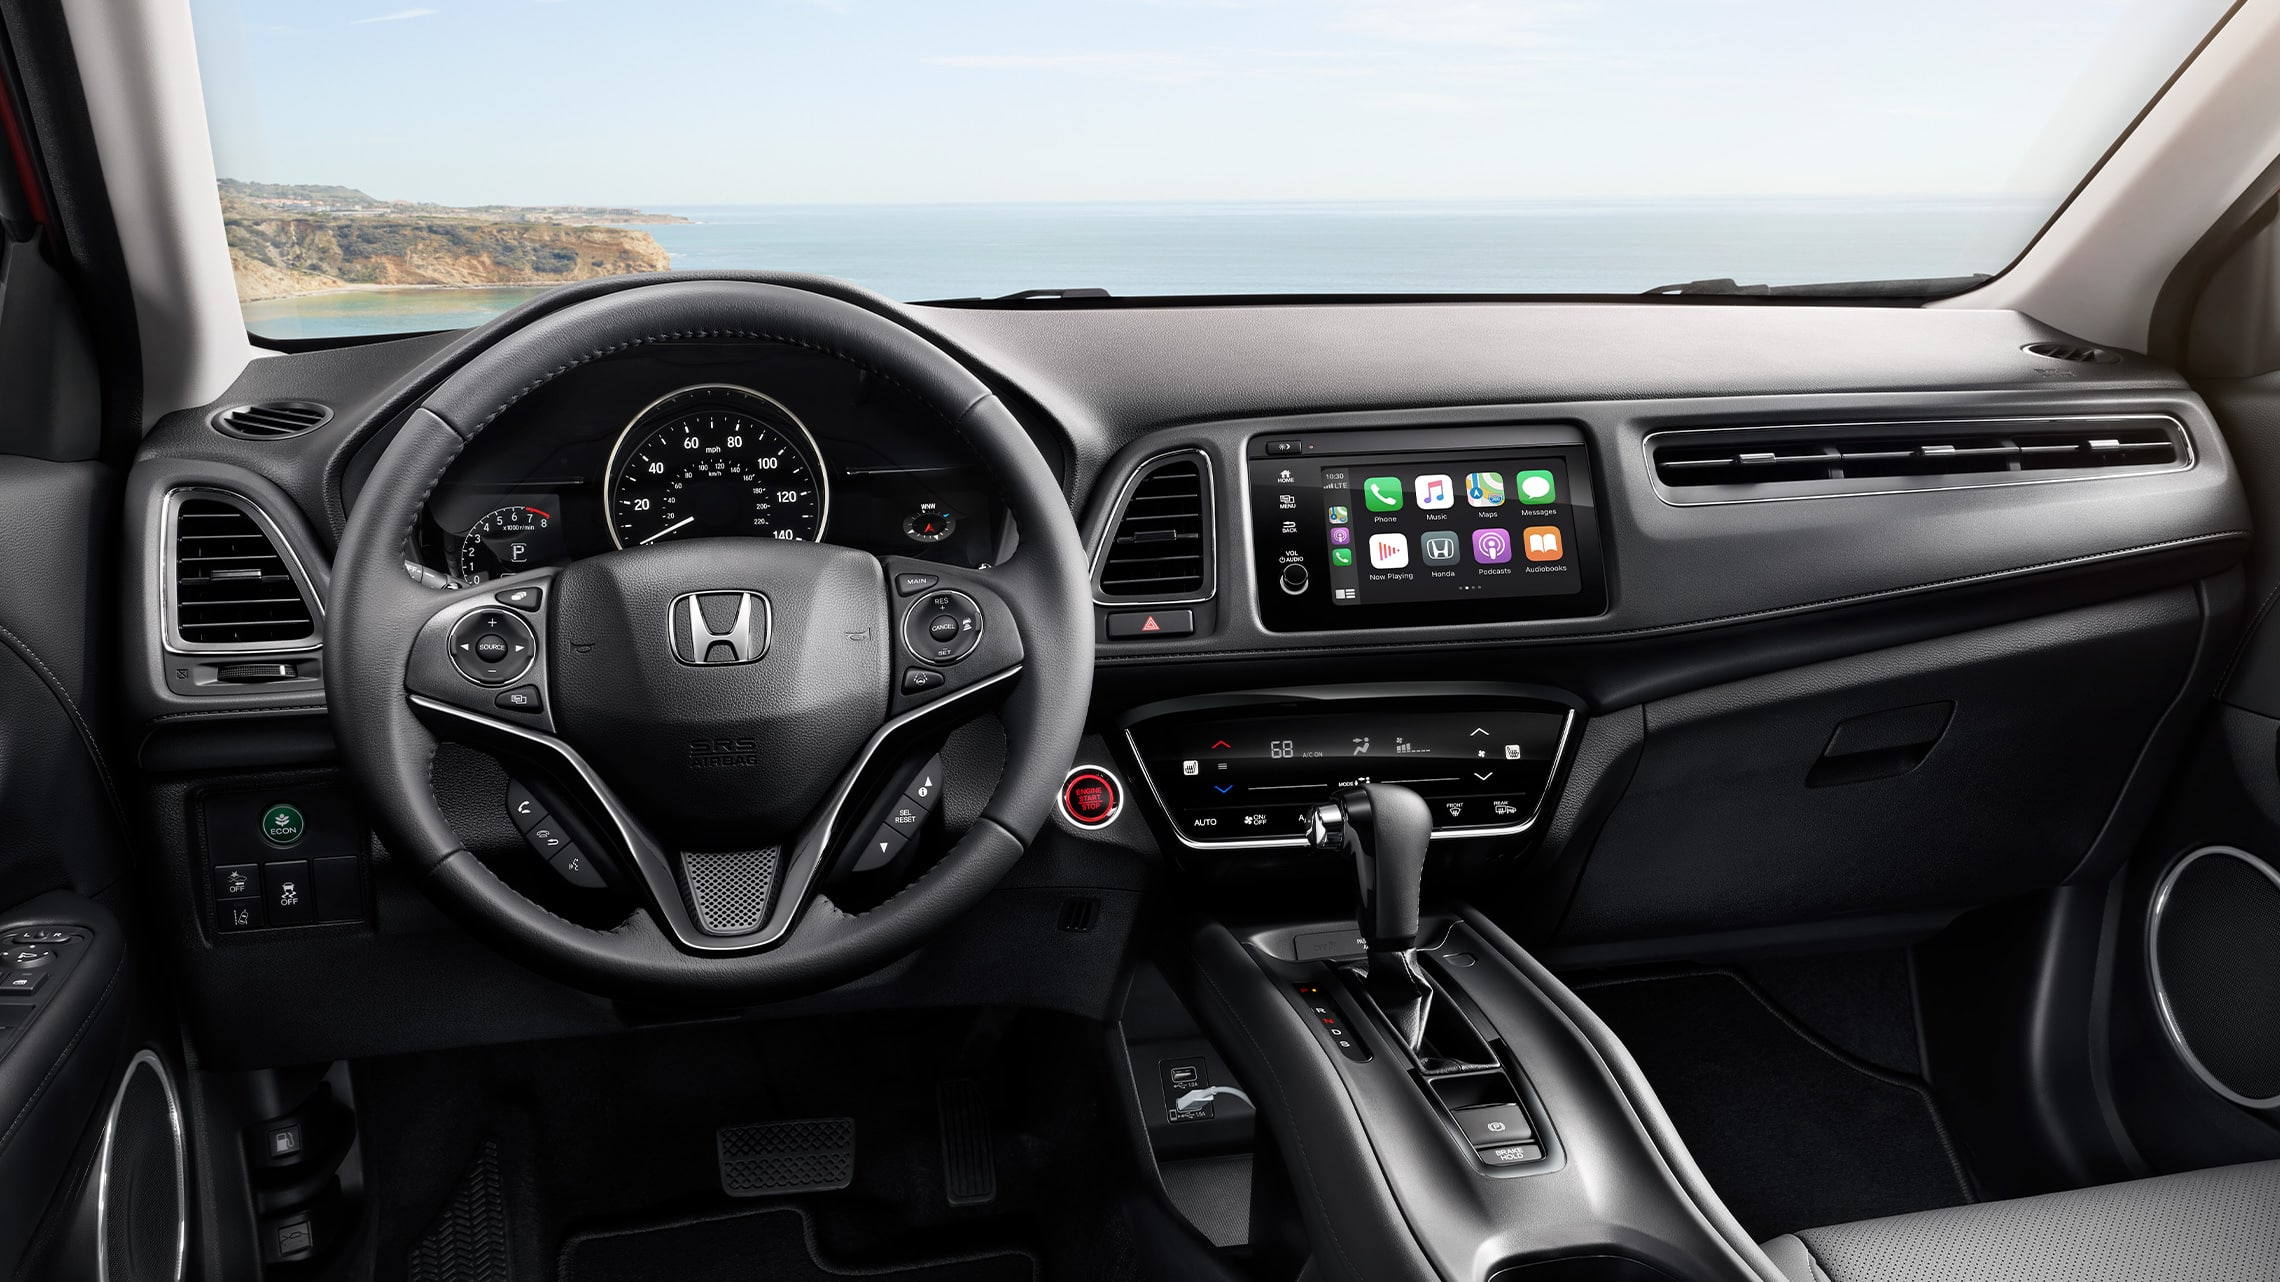 Interior cabin view of instrument panel in the 2020 Honda HR-V Touring in Black Leather.